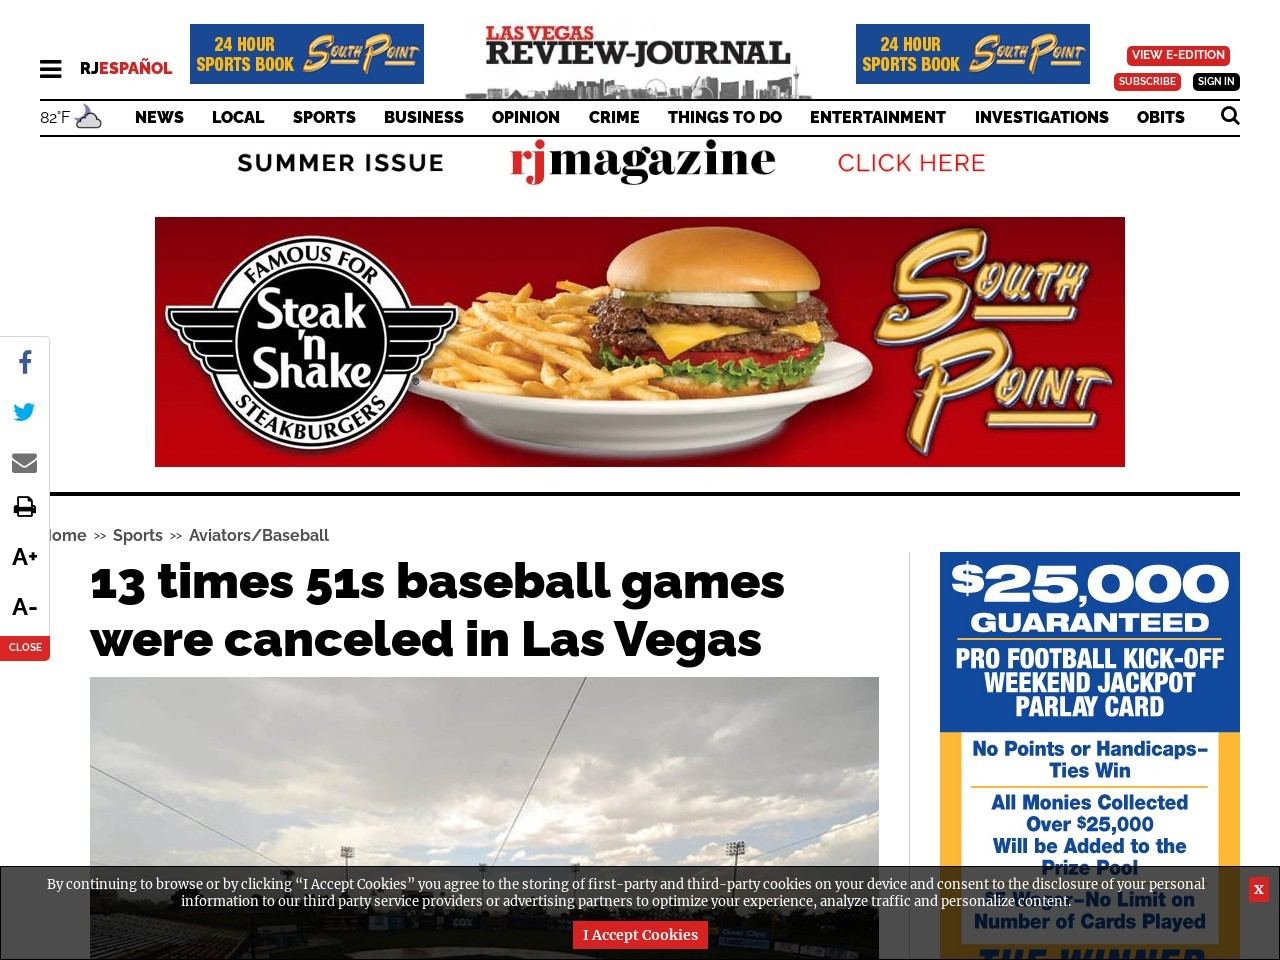 13 times 51s baseball games were canceled in Las Vegas